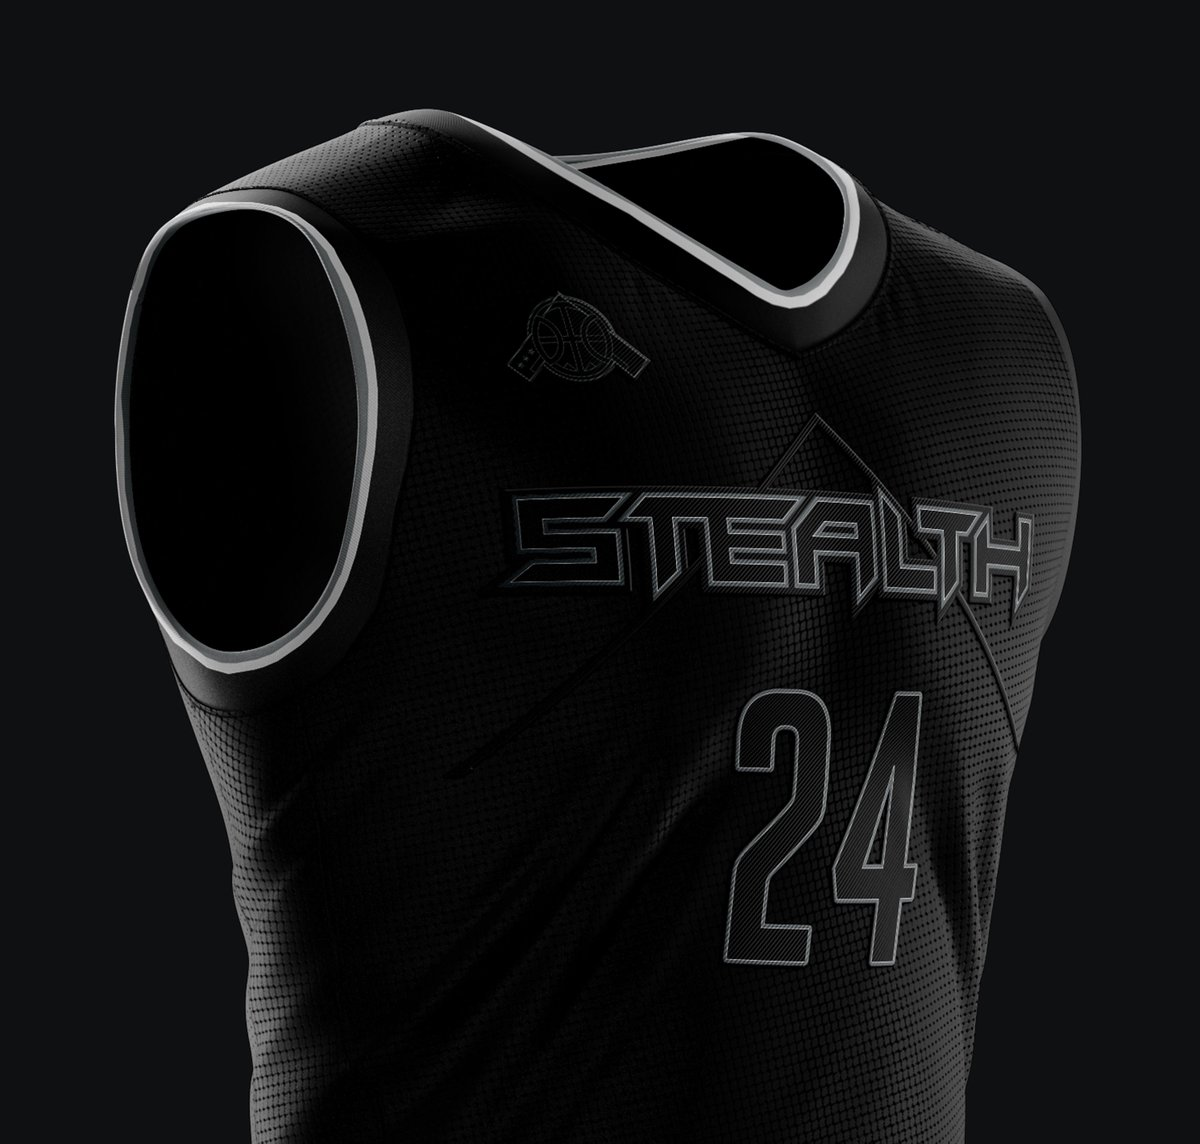 We're excited to bring you the first of our team brands: The DC Stealth (@StealthPCL)  Learn more at: https://t.co/LsVzWvhWxN  Merch available at: https://t.co/vJjjwcvOlw  PCL Team (@Wen__Hogan) on developing the brand: https://t.co/SuzQNcRhlb  #sportsbiz #dcstealth #thepcleague https://t.co/sBLCA9Uwar